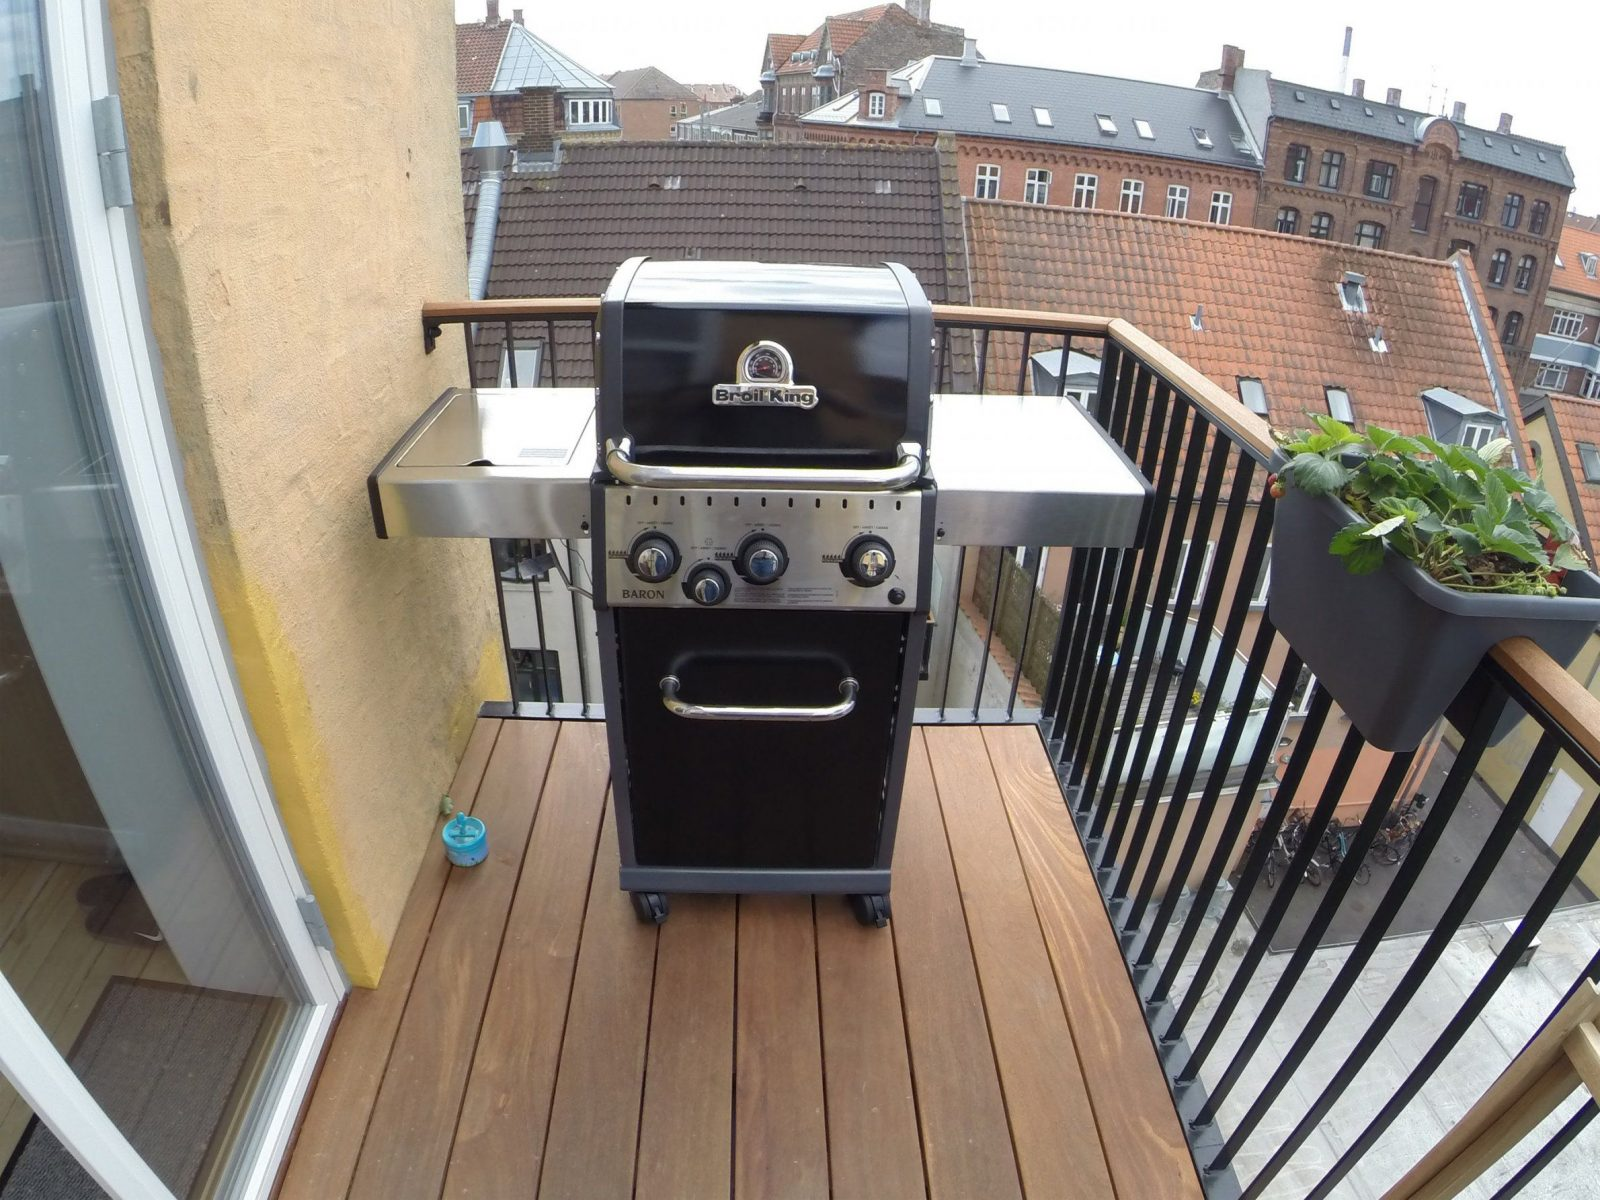 Assembling A Broil King Baron 340  Youtube von Broil King Baron 440 Test Photo